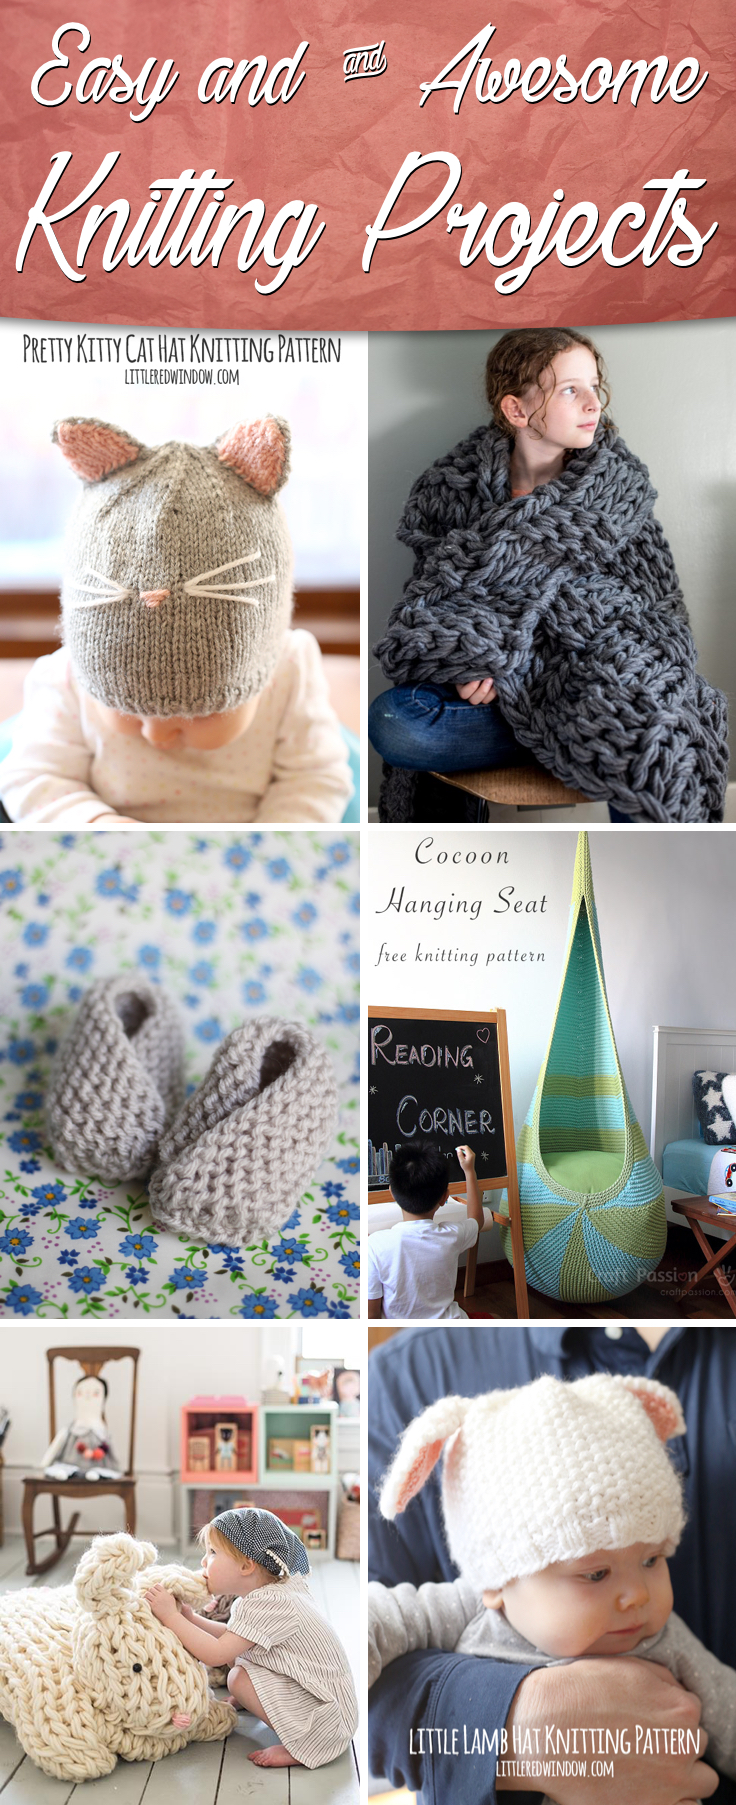 25 Incredibly Easy & Awesome Knitting Projects – Cute DIY Projects